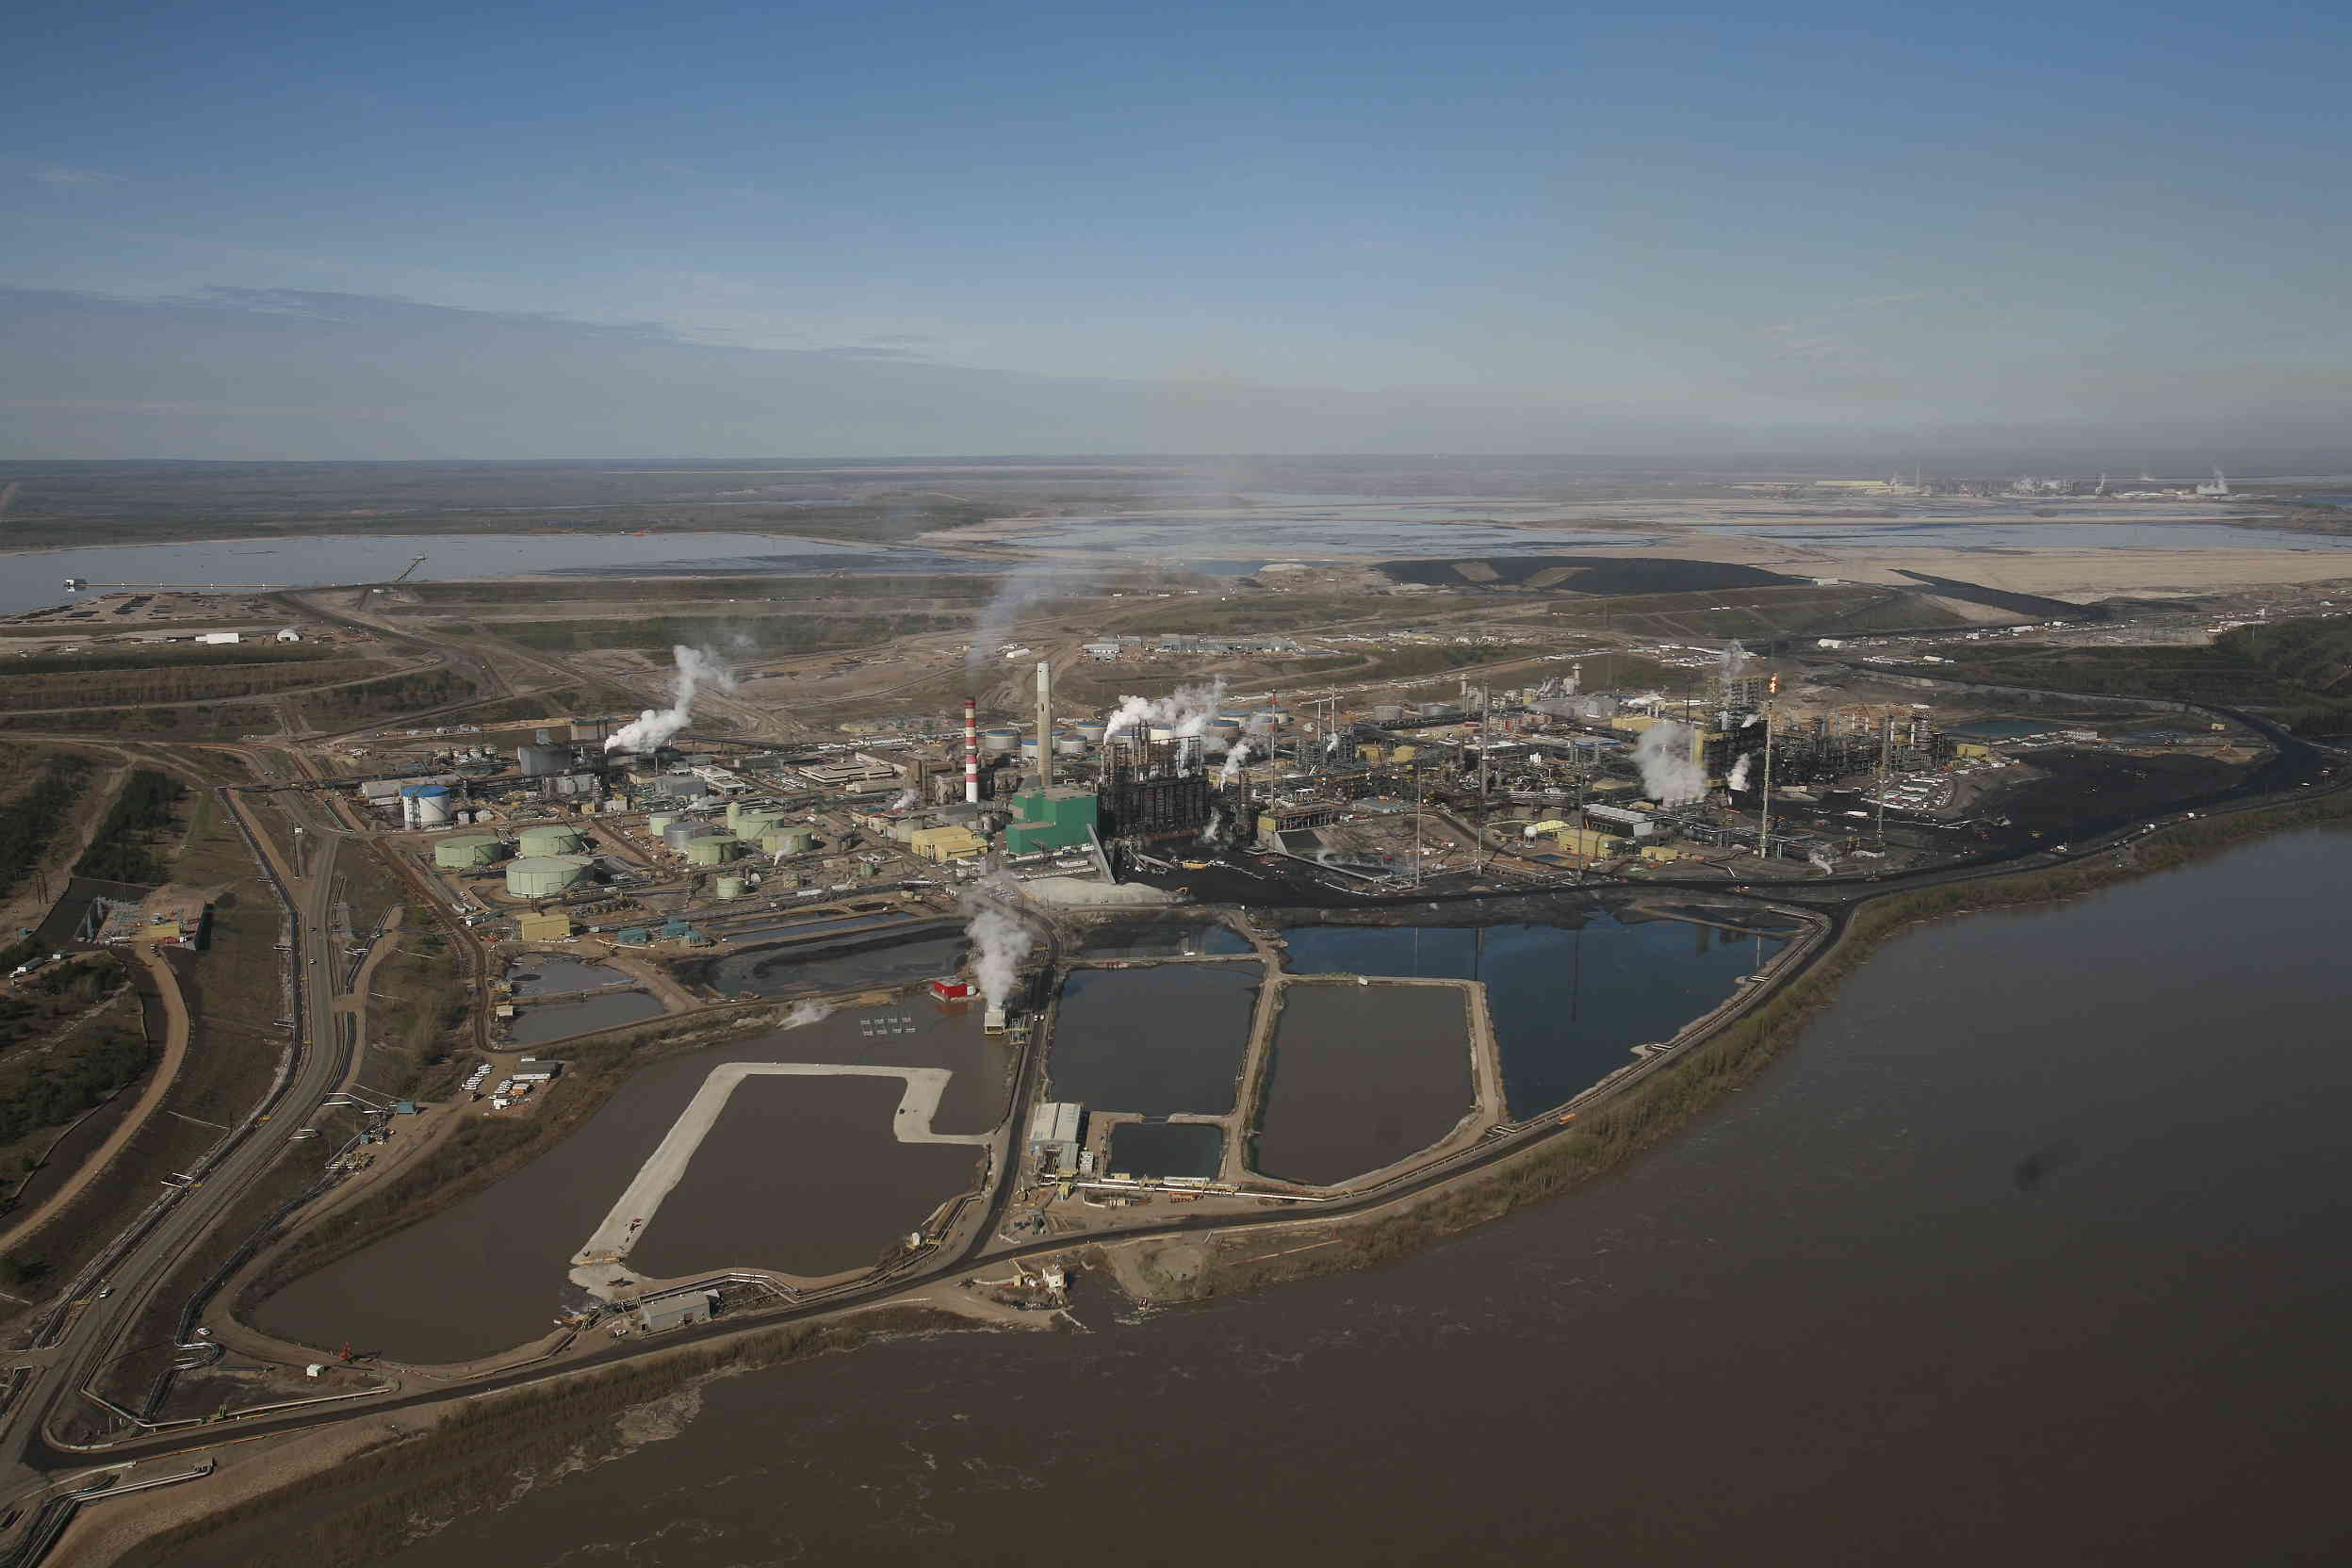 alberta tar sands in canada essay Transcript of alberta oil sands case study i suggest we should do like a picture of the oil crude oil from the athabasca oil sands formation in alberta, canada.